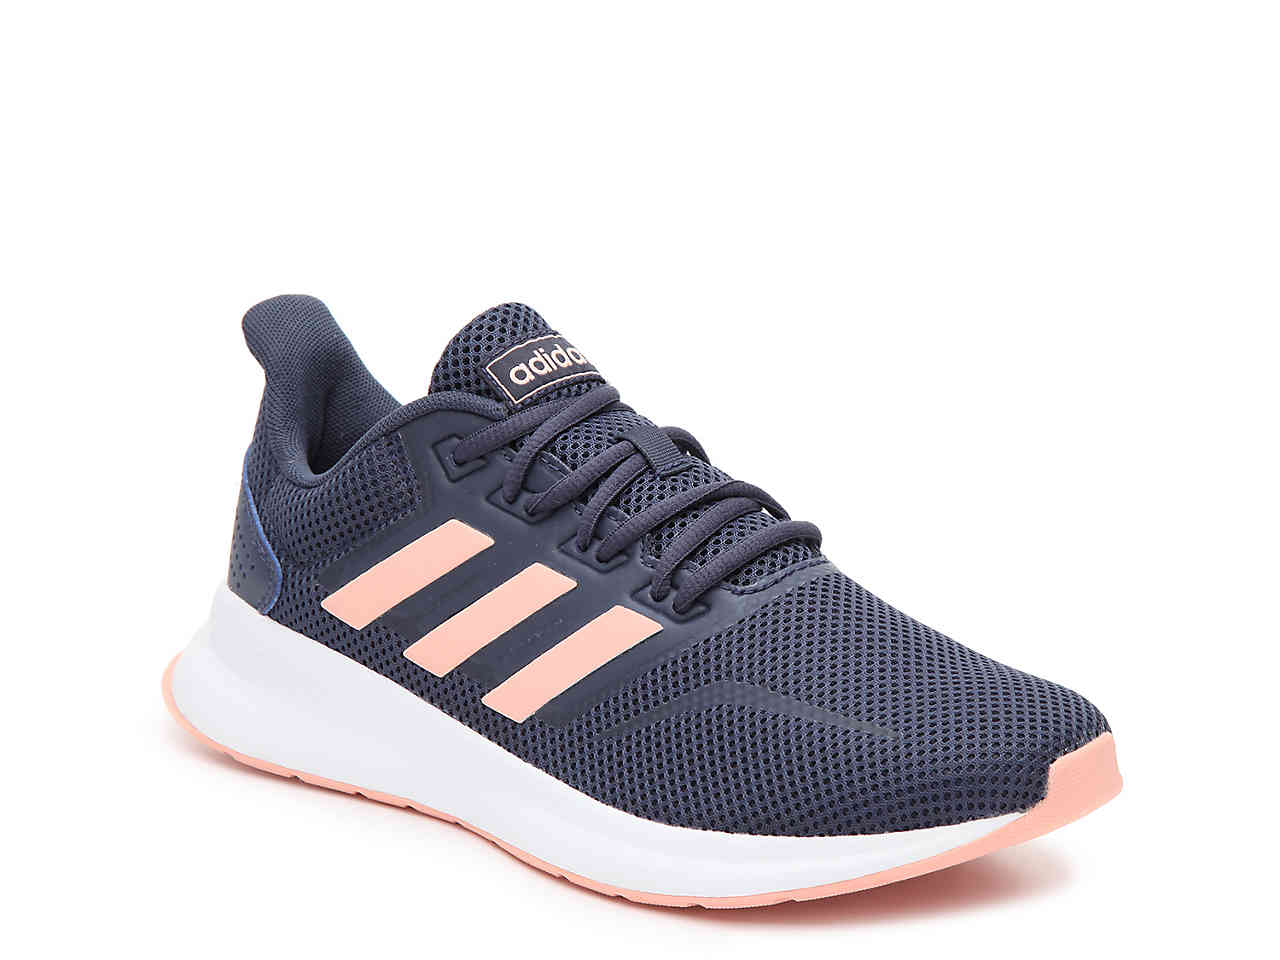 Best womens 2016 adidas running shoes black yeezy pink ultra